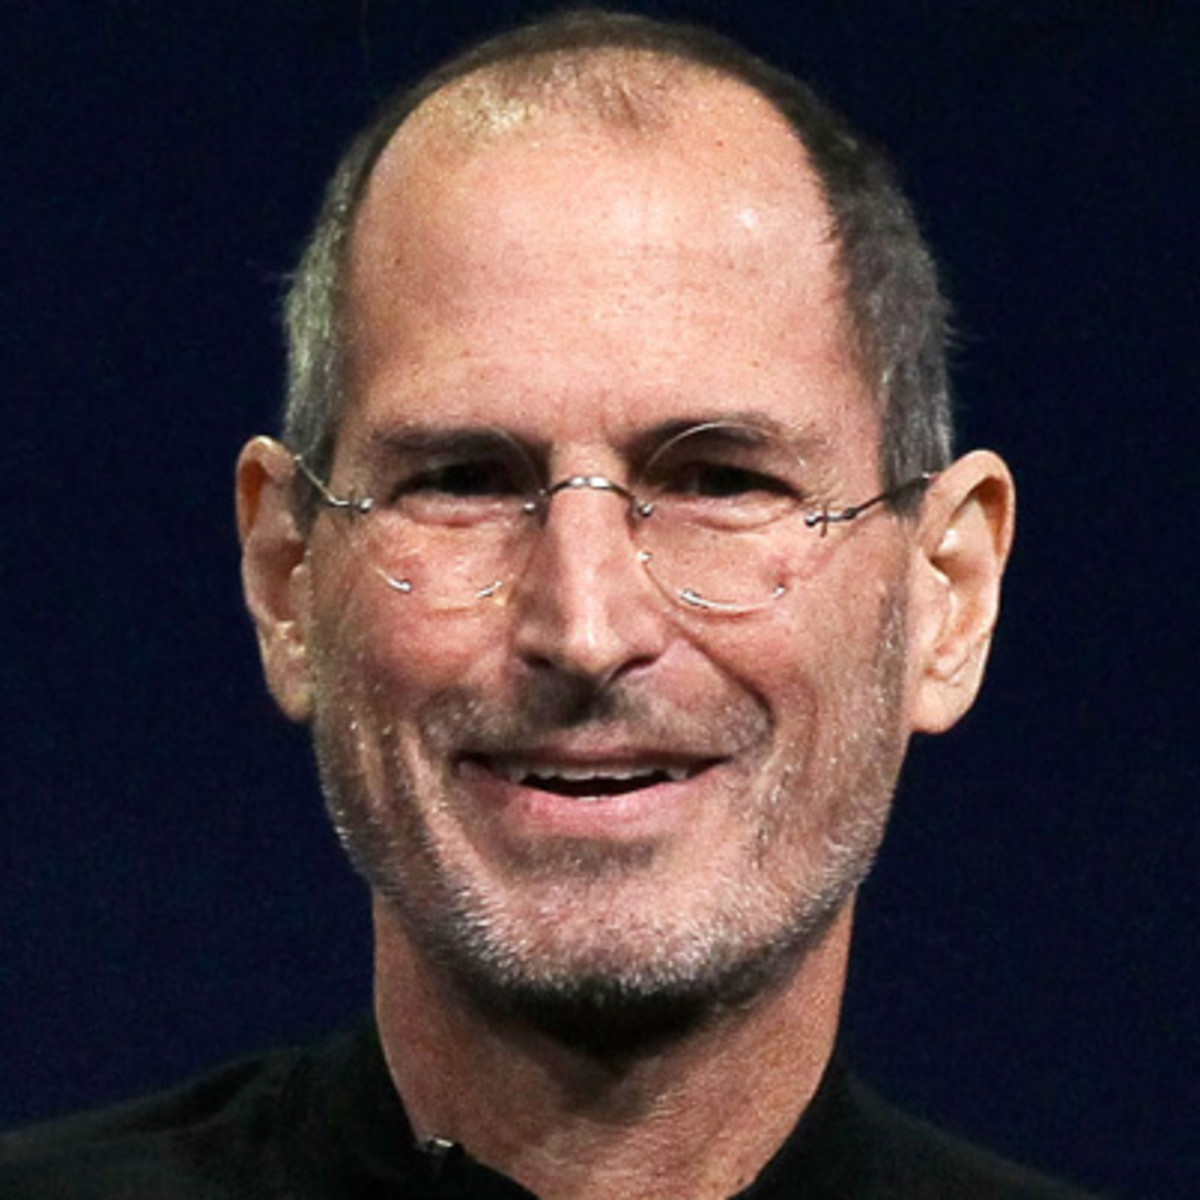 Steven Jobs. source: en-wikipedia.com